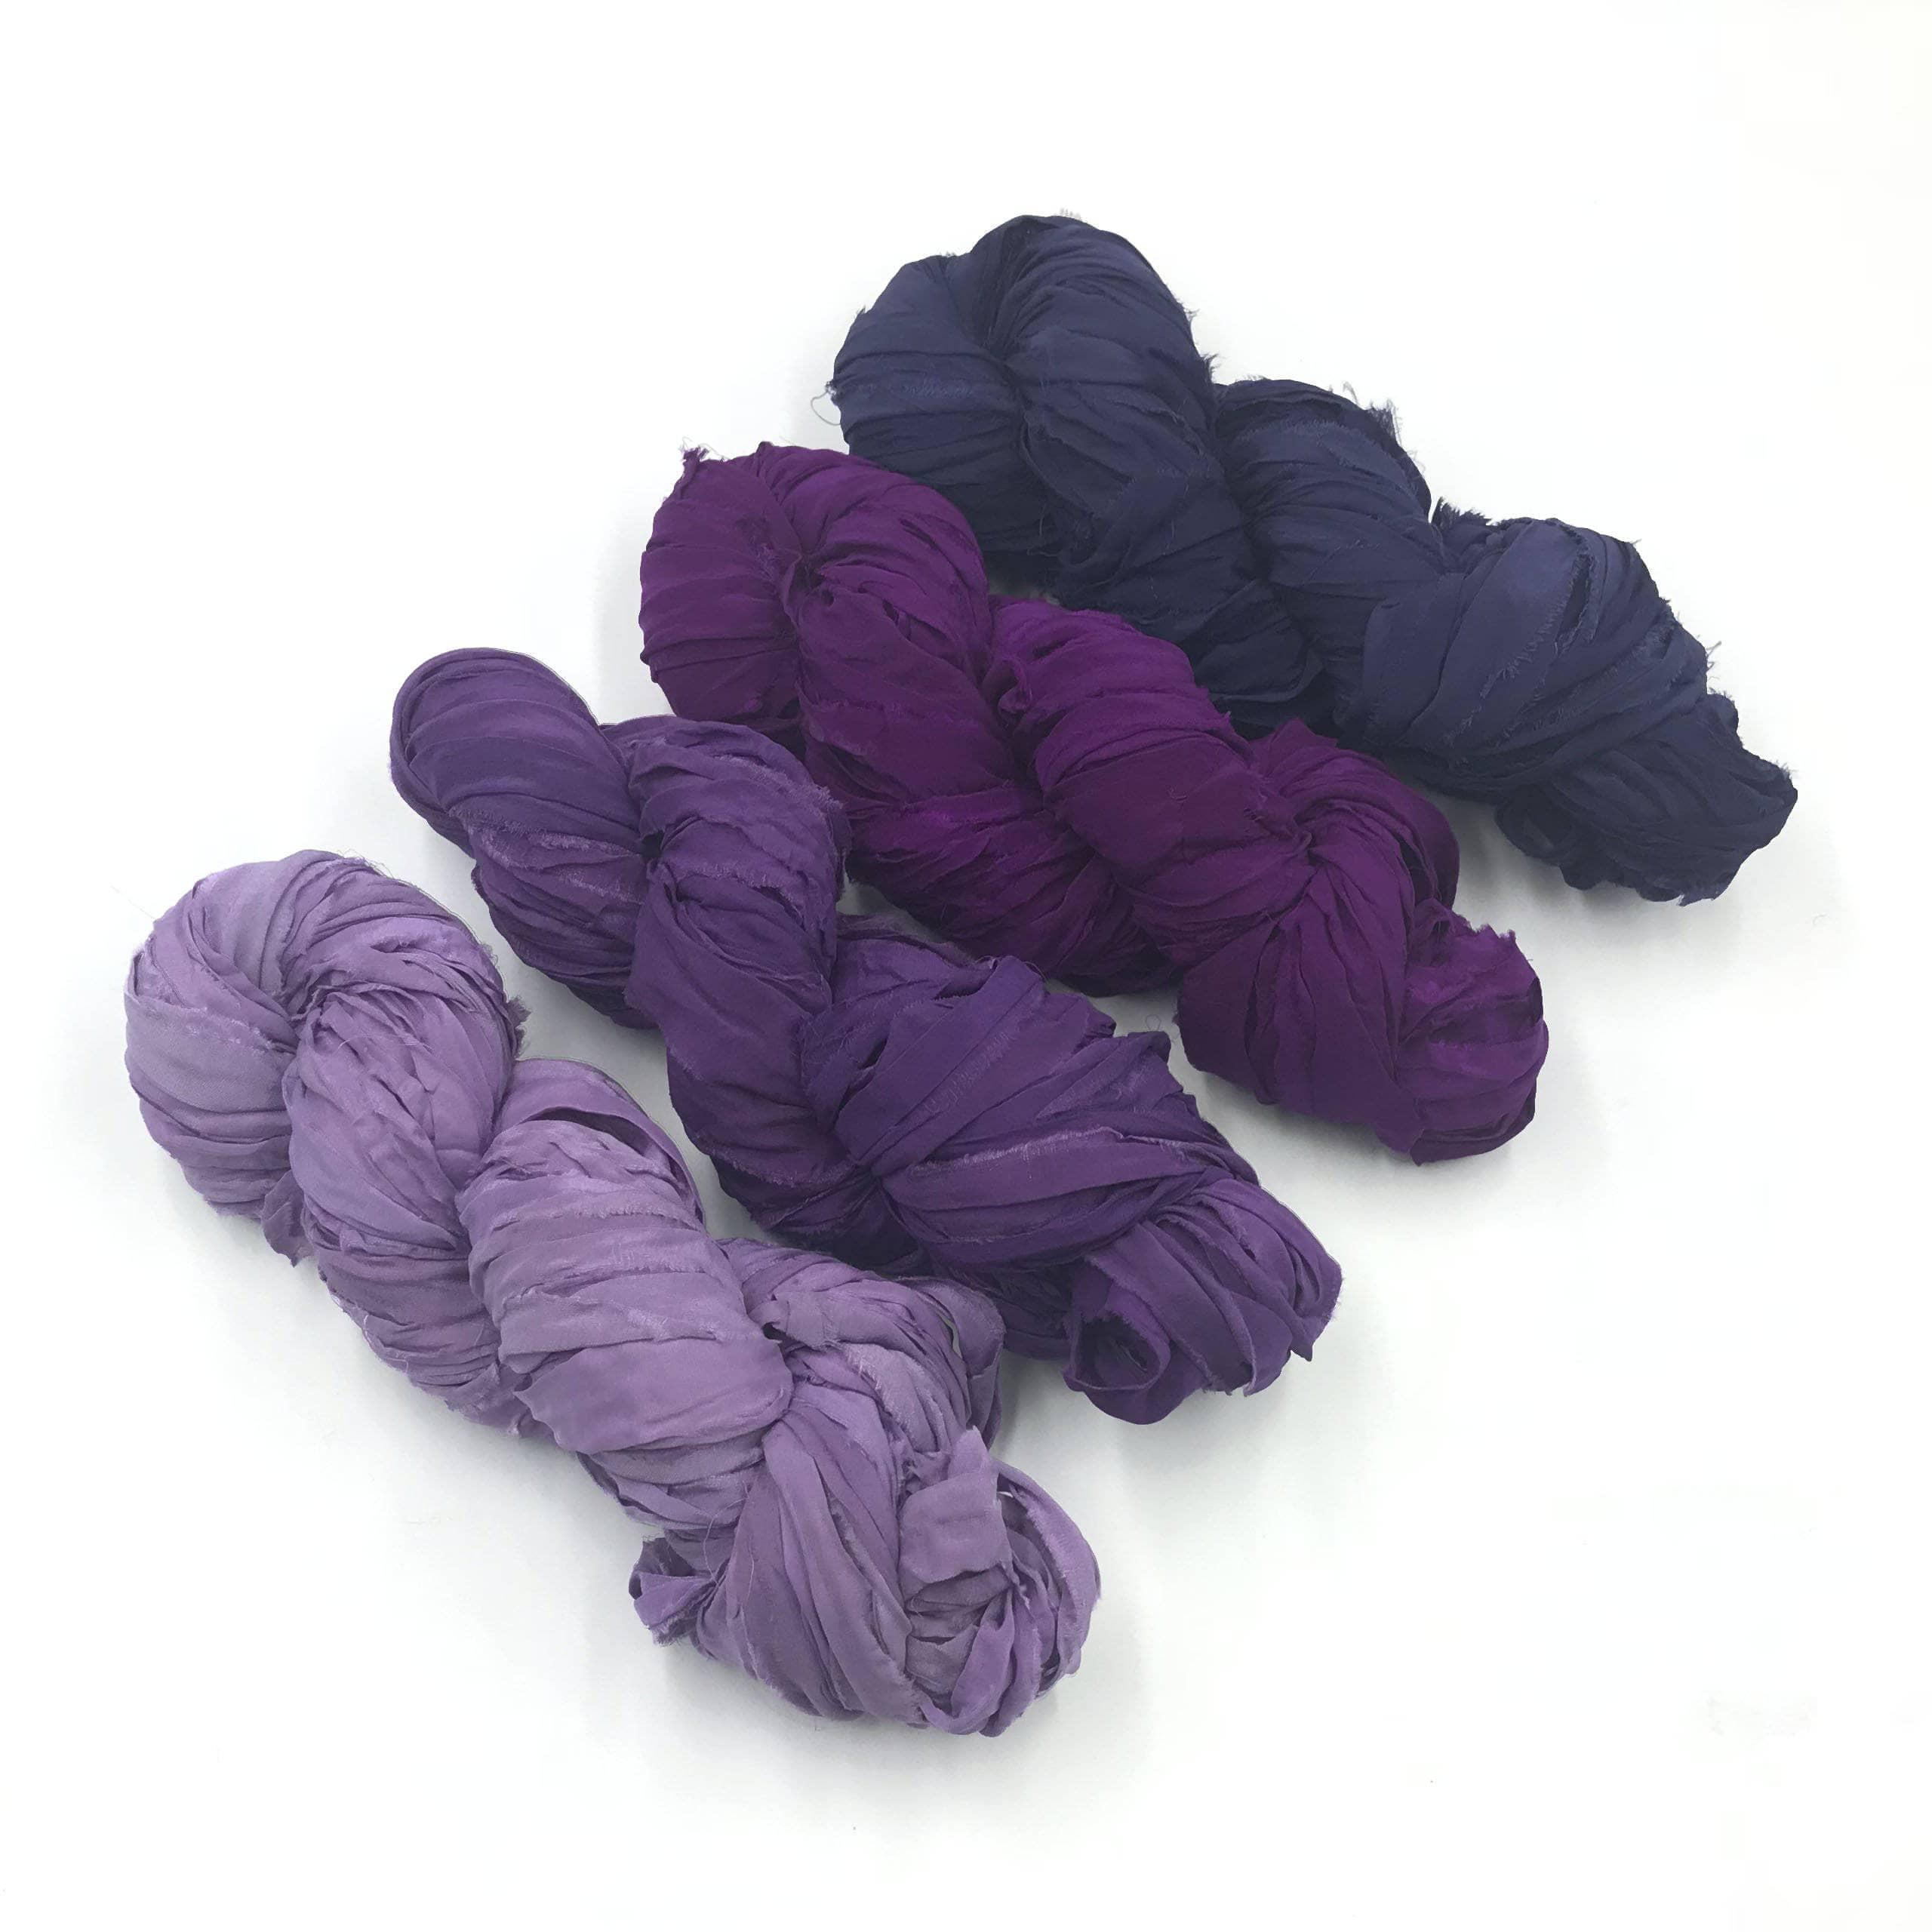 multiple lengths green Mountain Mist Handspun Art Yarn is a blue and purple fiber blend plyed with silver sequin thread